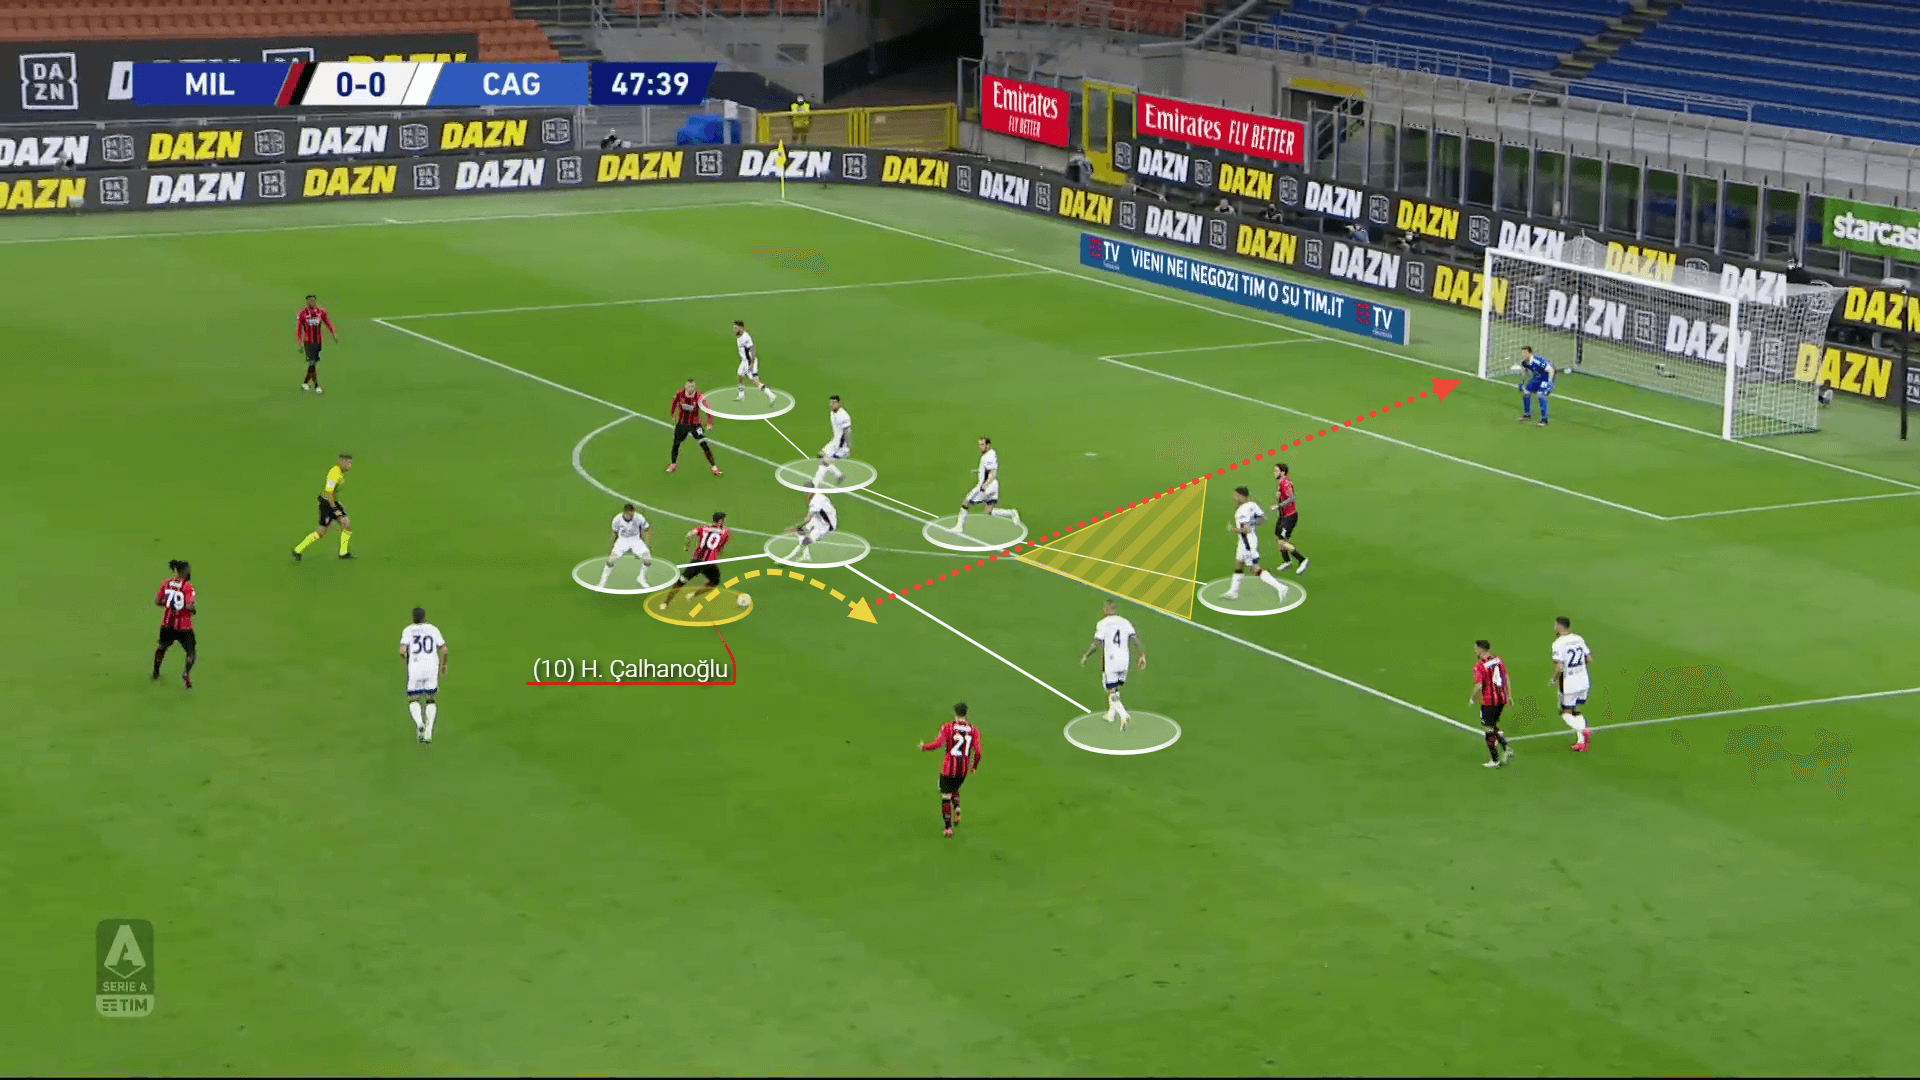 Hakan Calhanoglu scout report: How his technical ability fits Inzaghi's Inter tactical analysis tactics